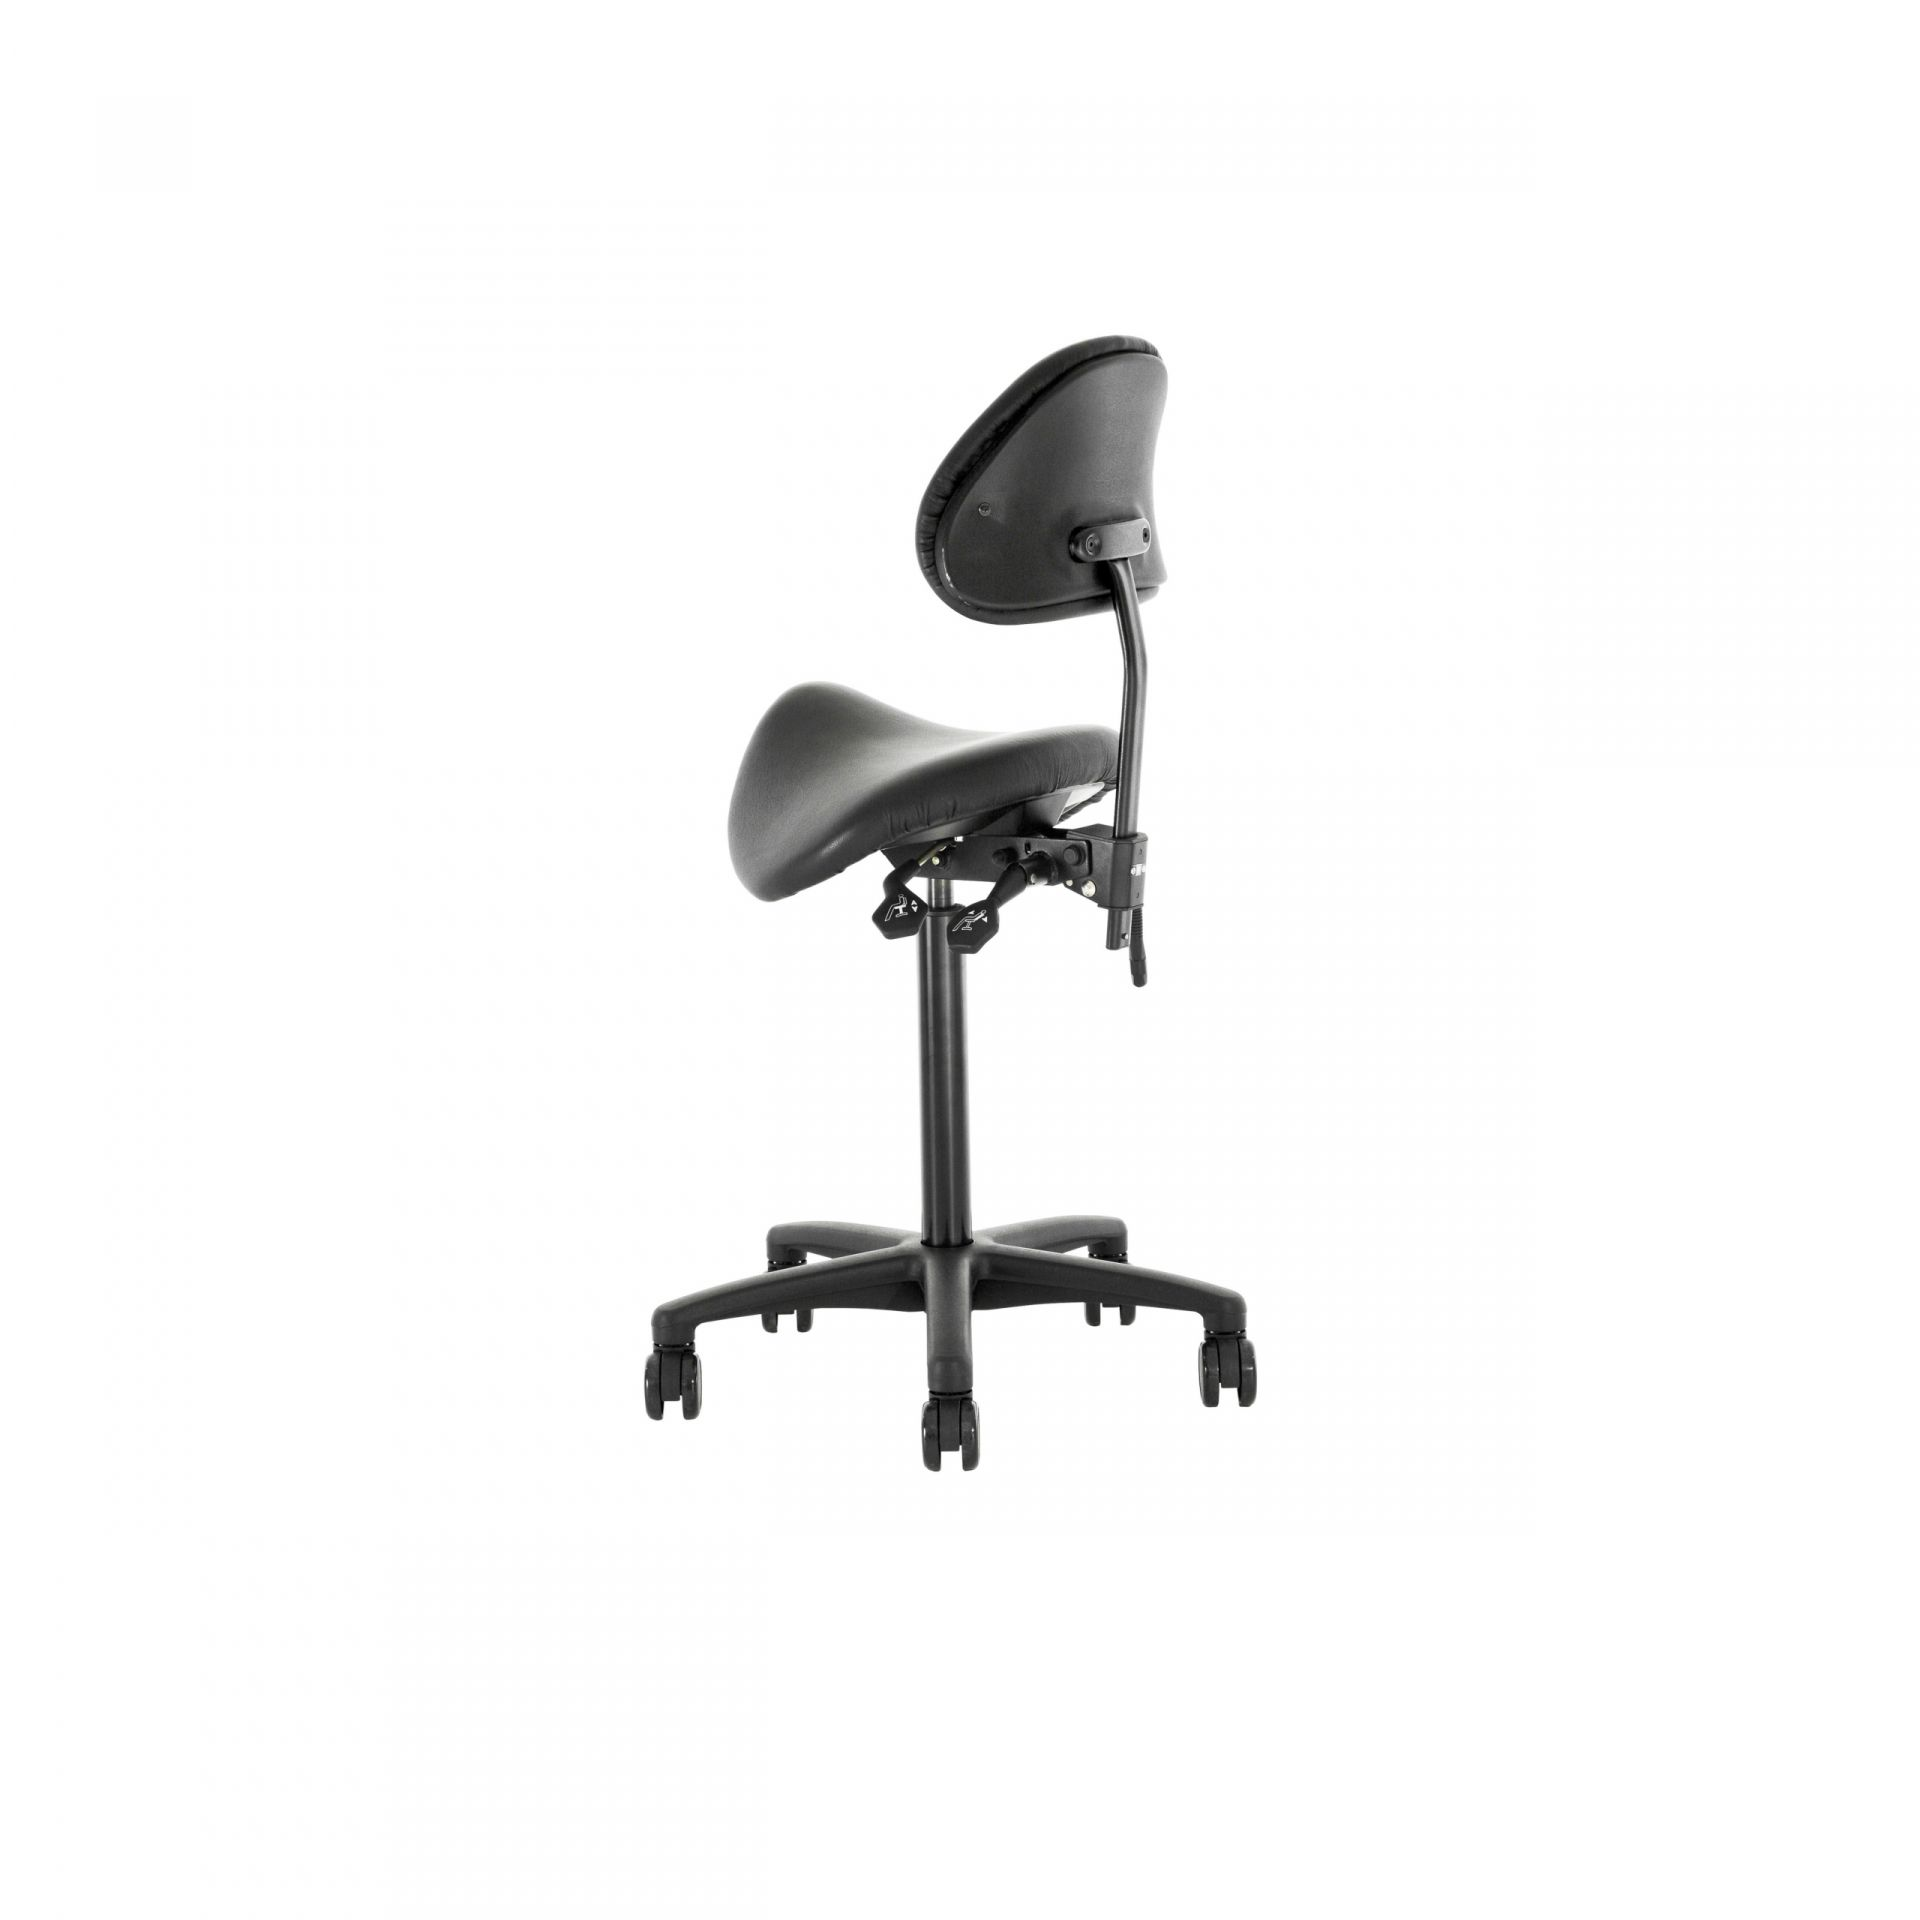 Saddle seat Office chair with saddle seat product image 2